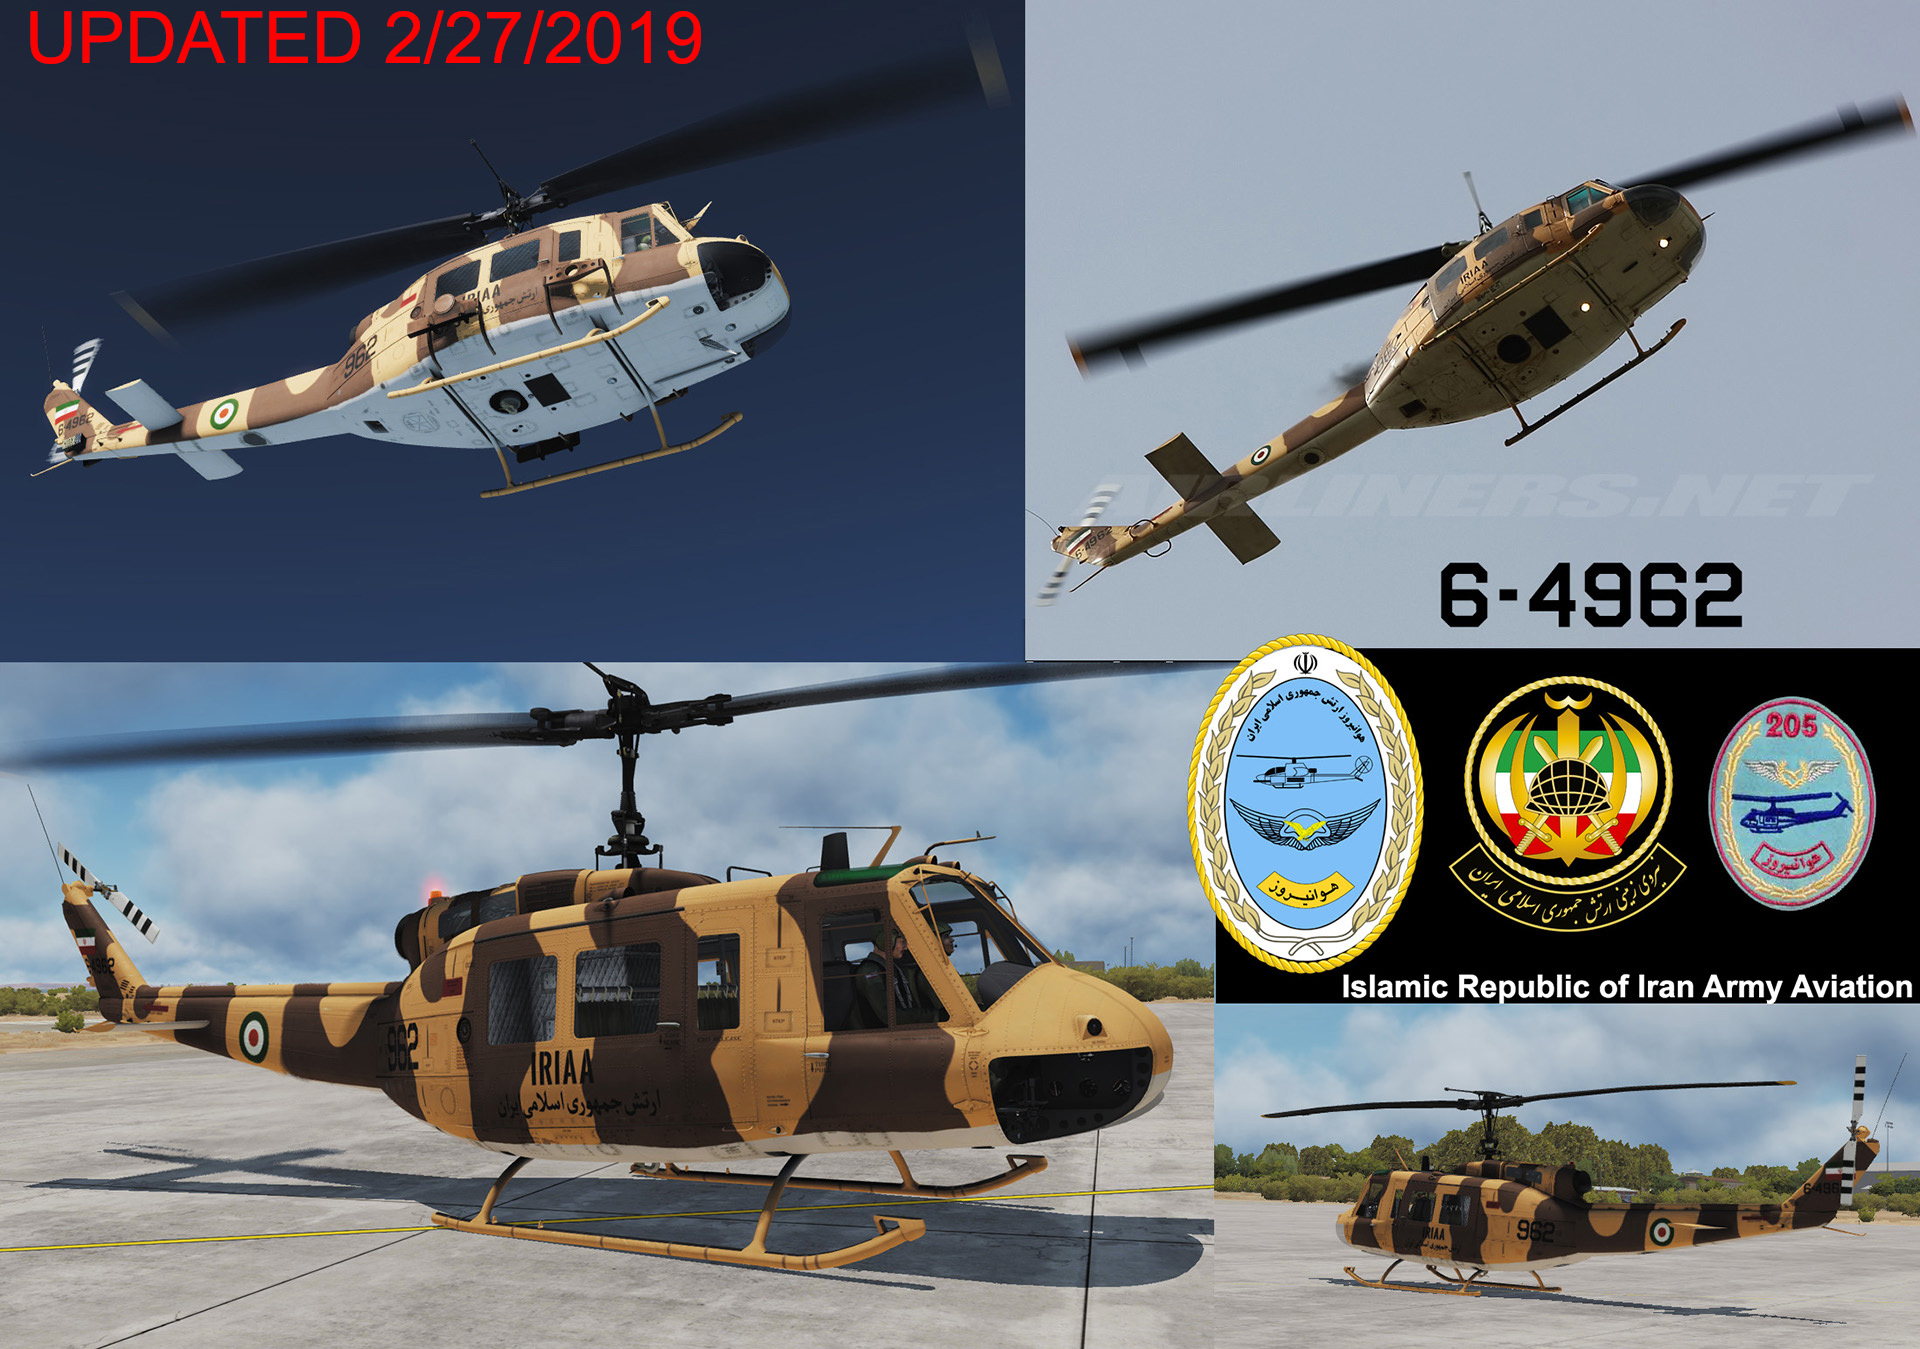 IRAN ARMY AVIATION (IRIAA) 6-4962 (AB-205A) UH-1H Huey (2/27/2019) UPDATED